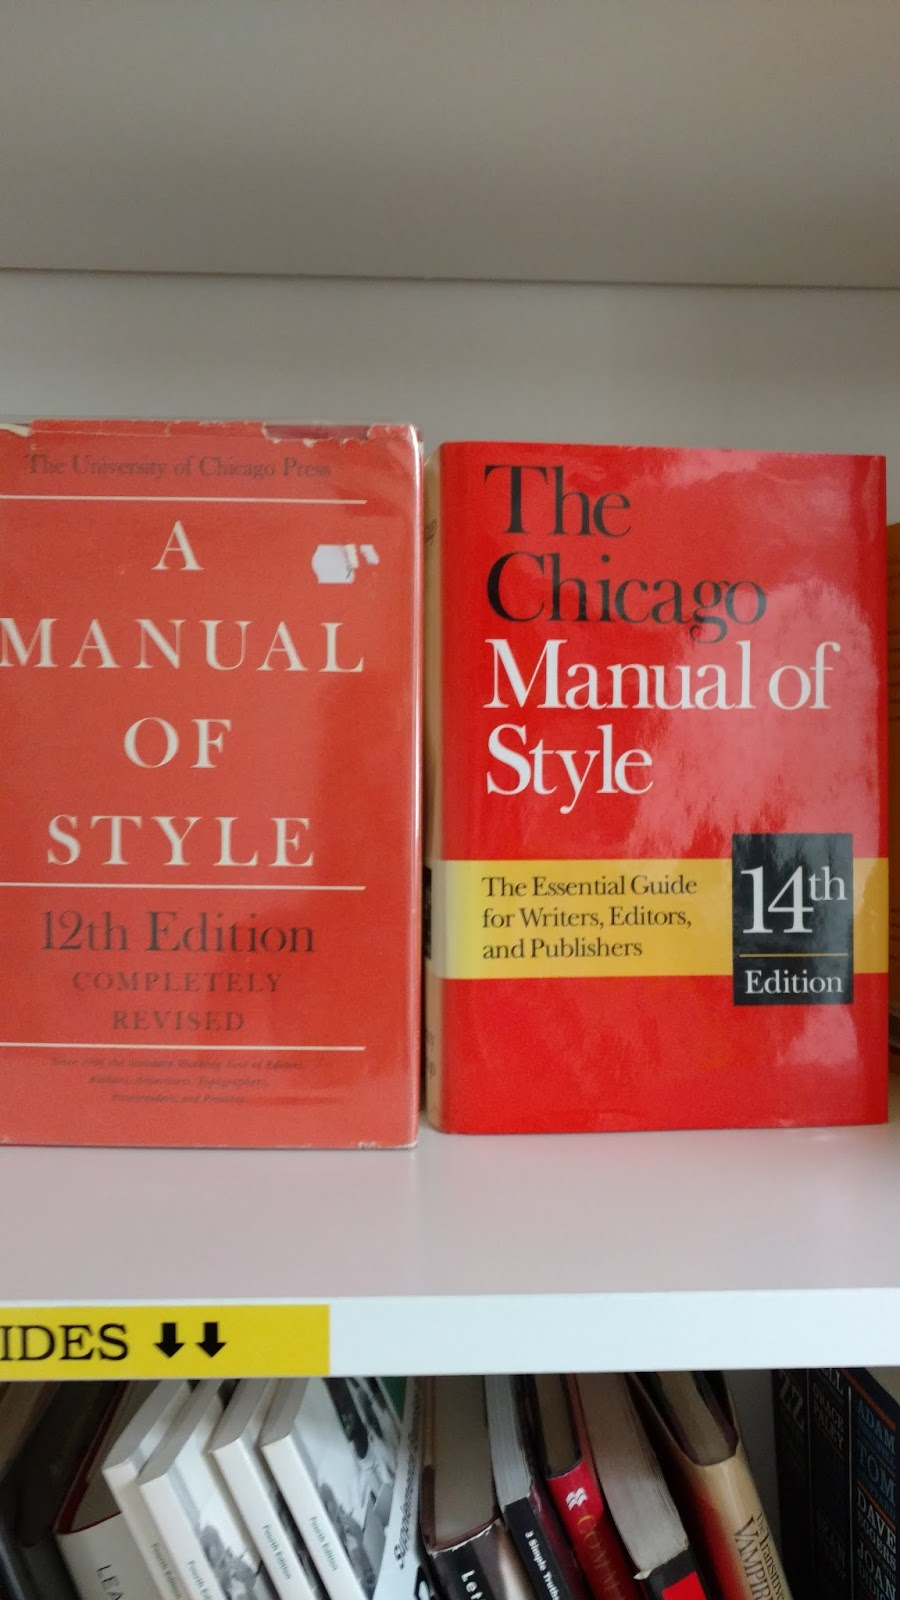 I've never seen them before, but here's actual copies of the Chicago Manual  of Style - both the 12th and 14th Editions.